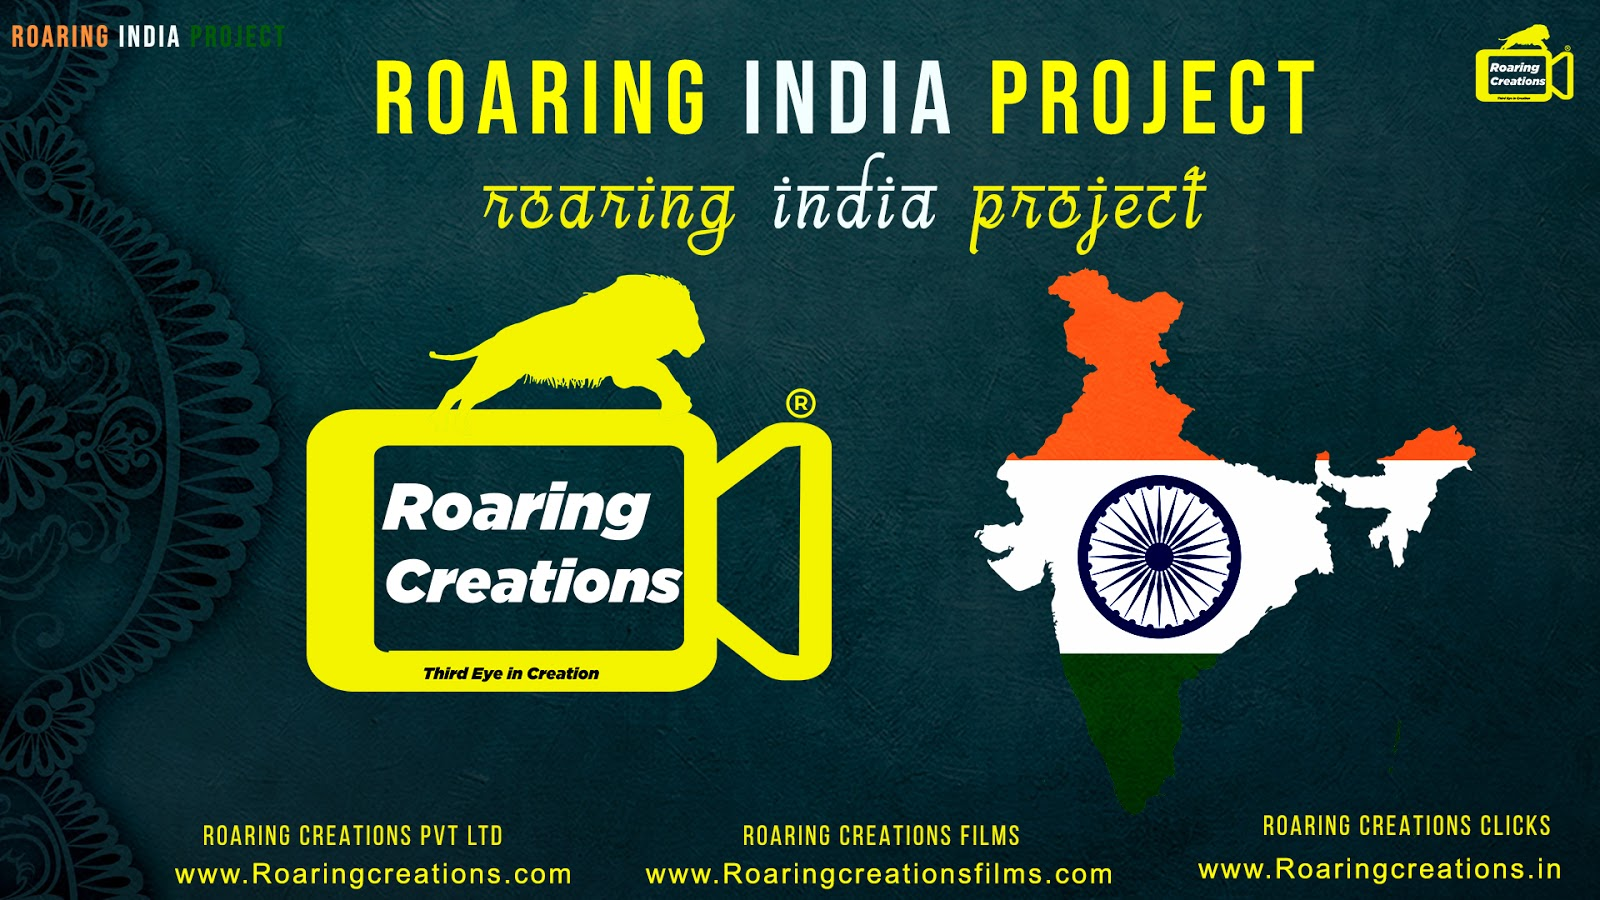 Roaring India Project